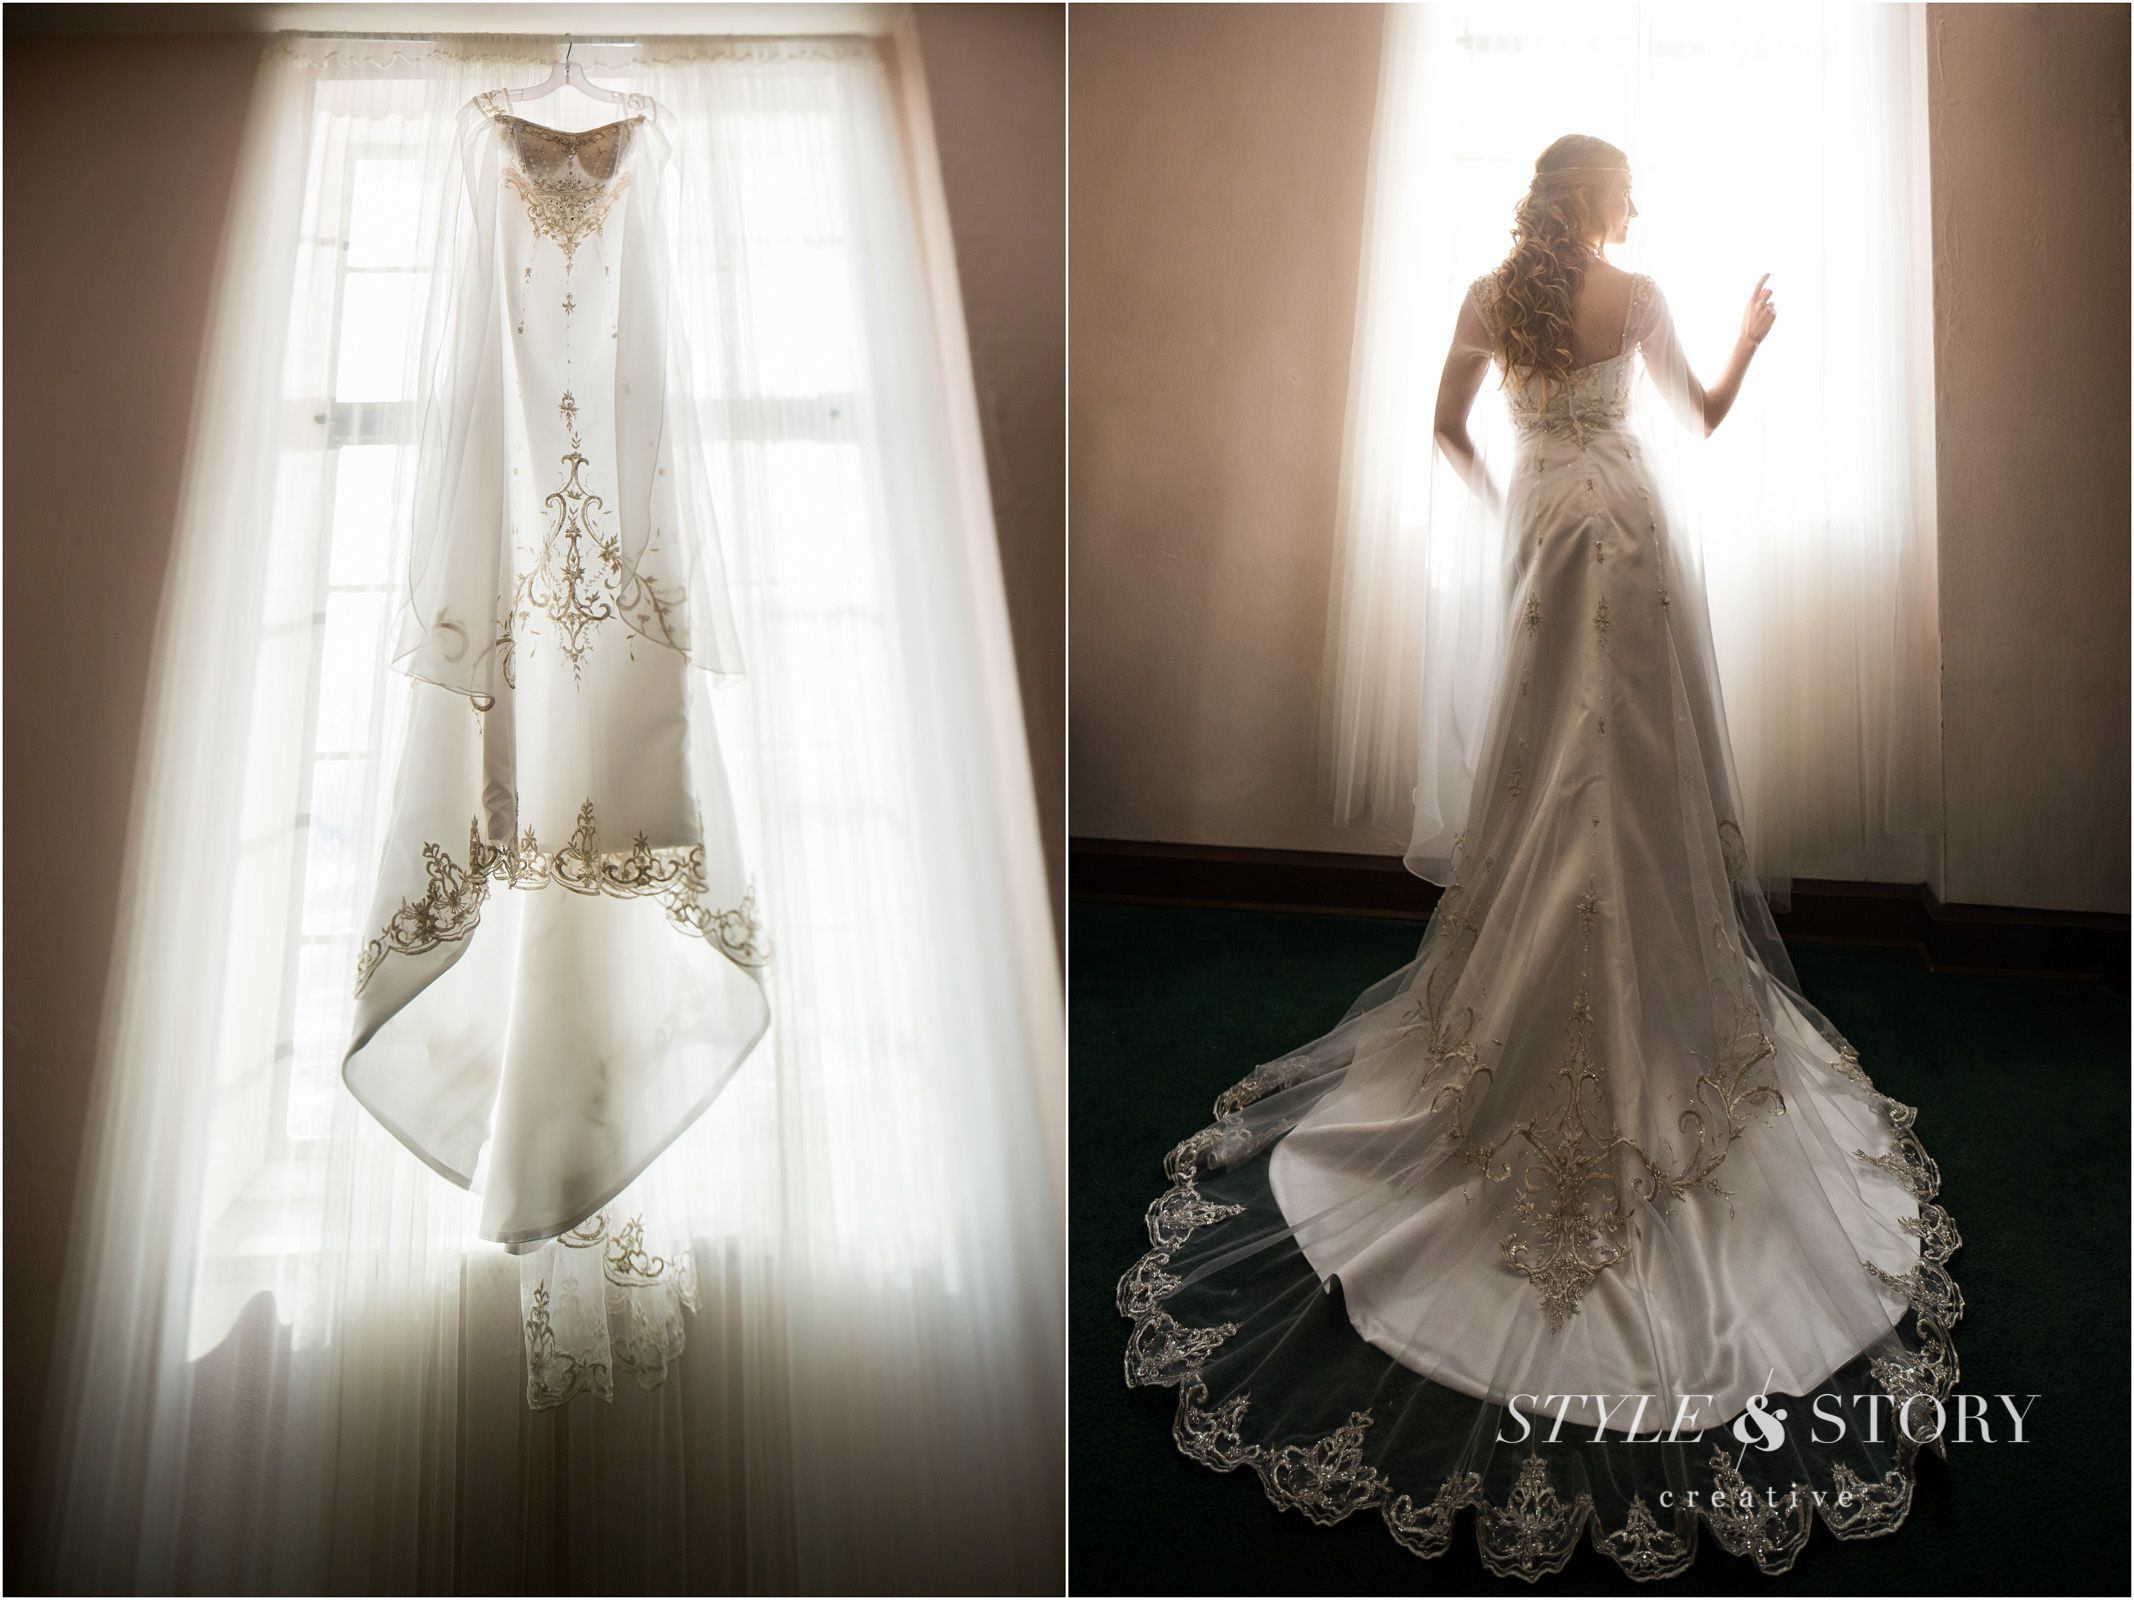 Wedding dress was inspired by Twilight Princess Zelda and Lord of